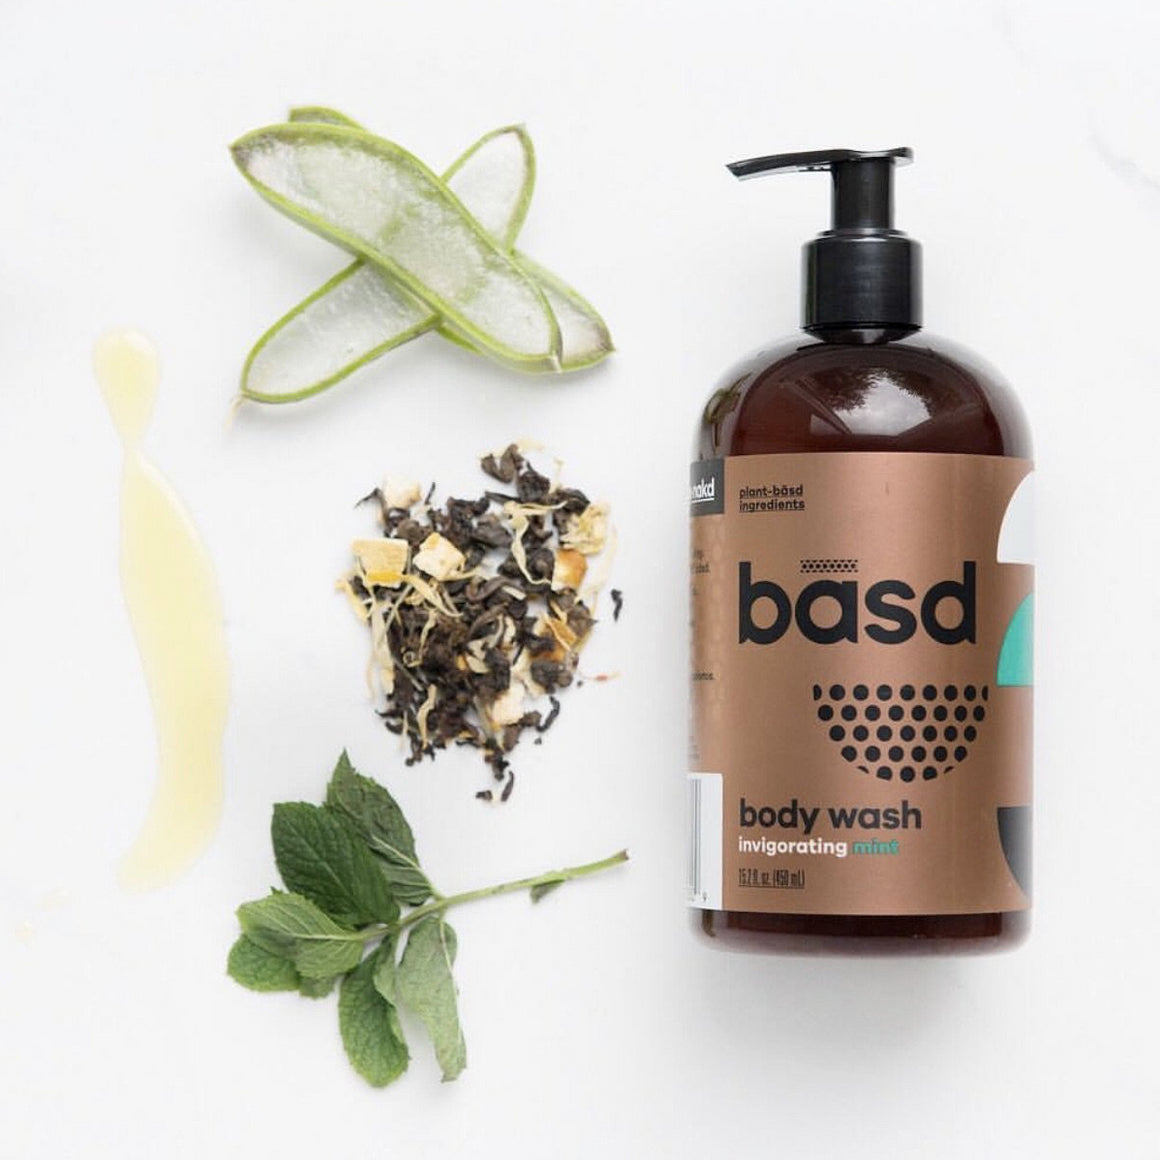 basd bodycare mint body wash